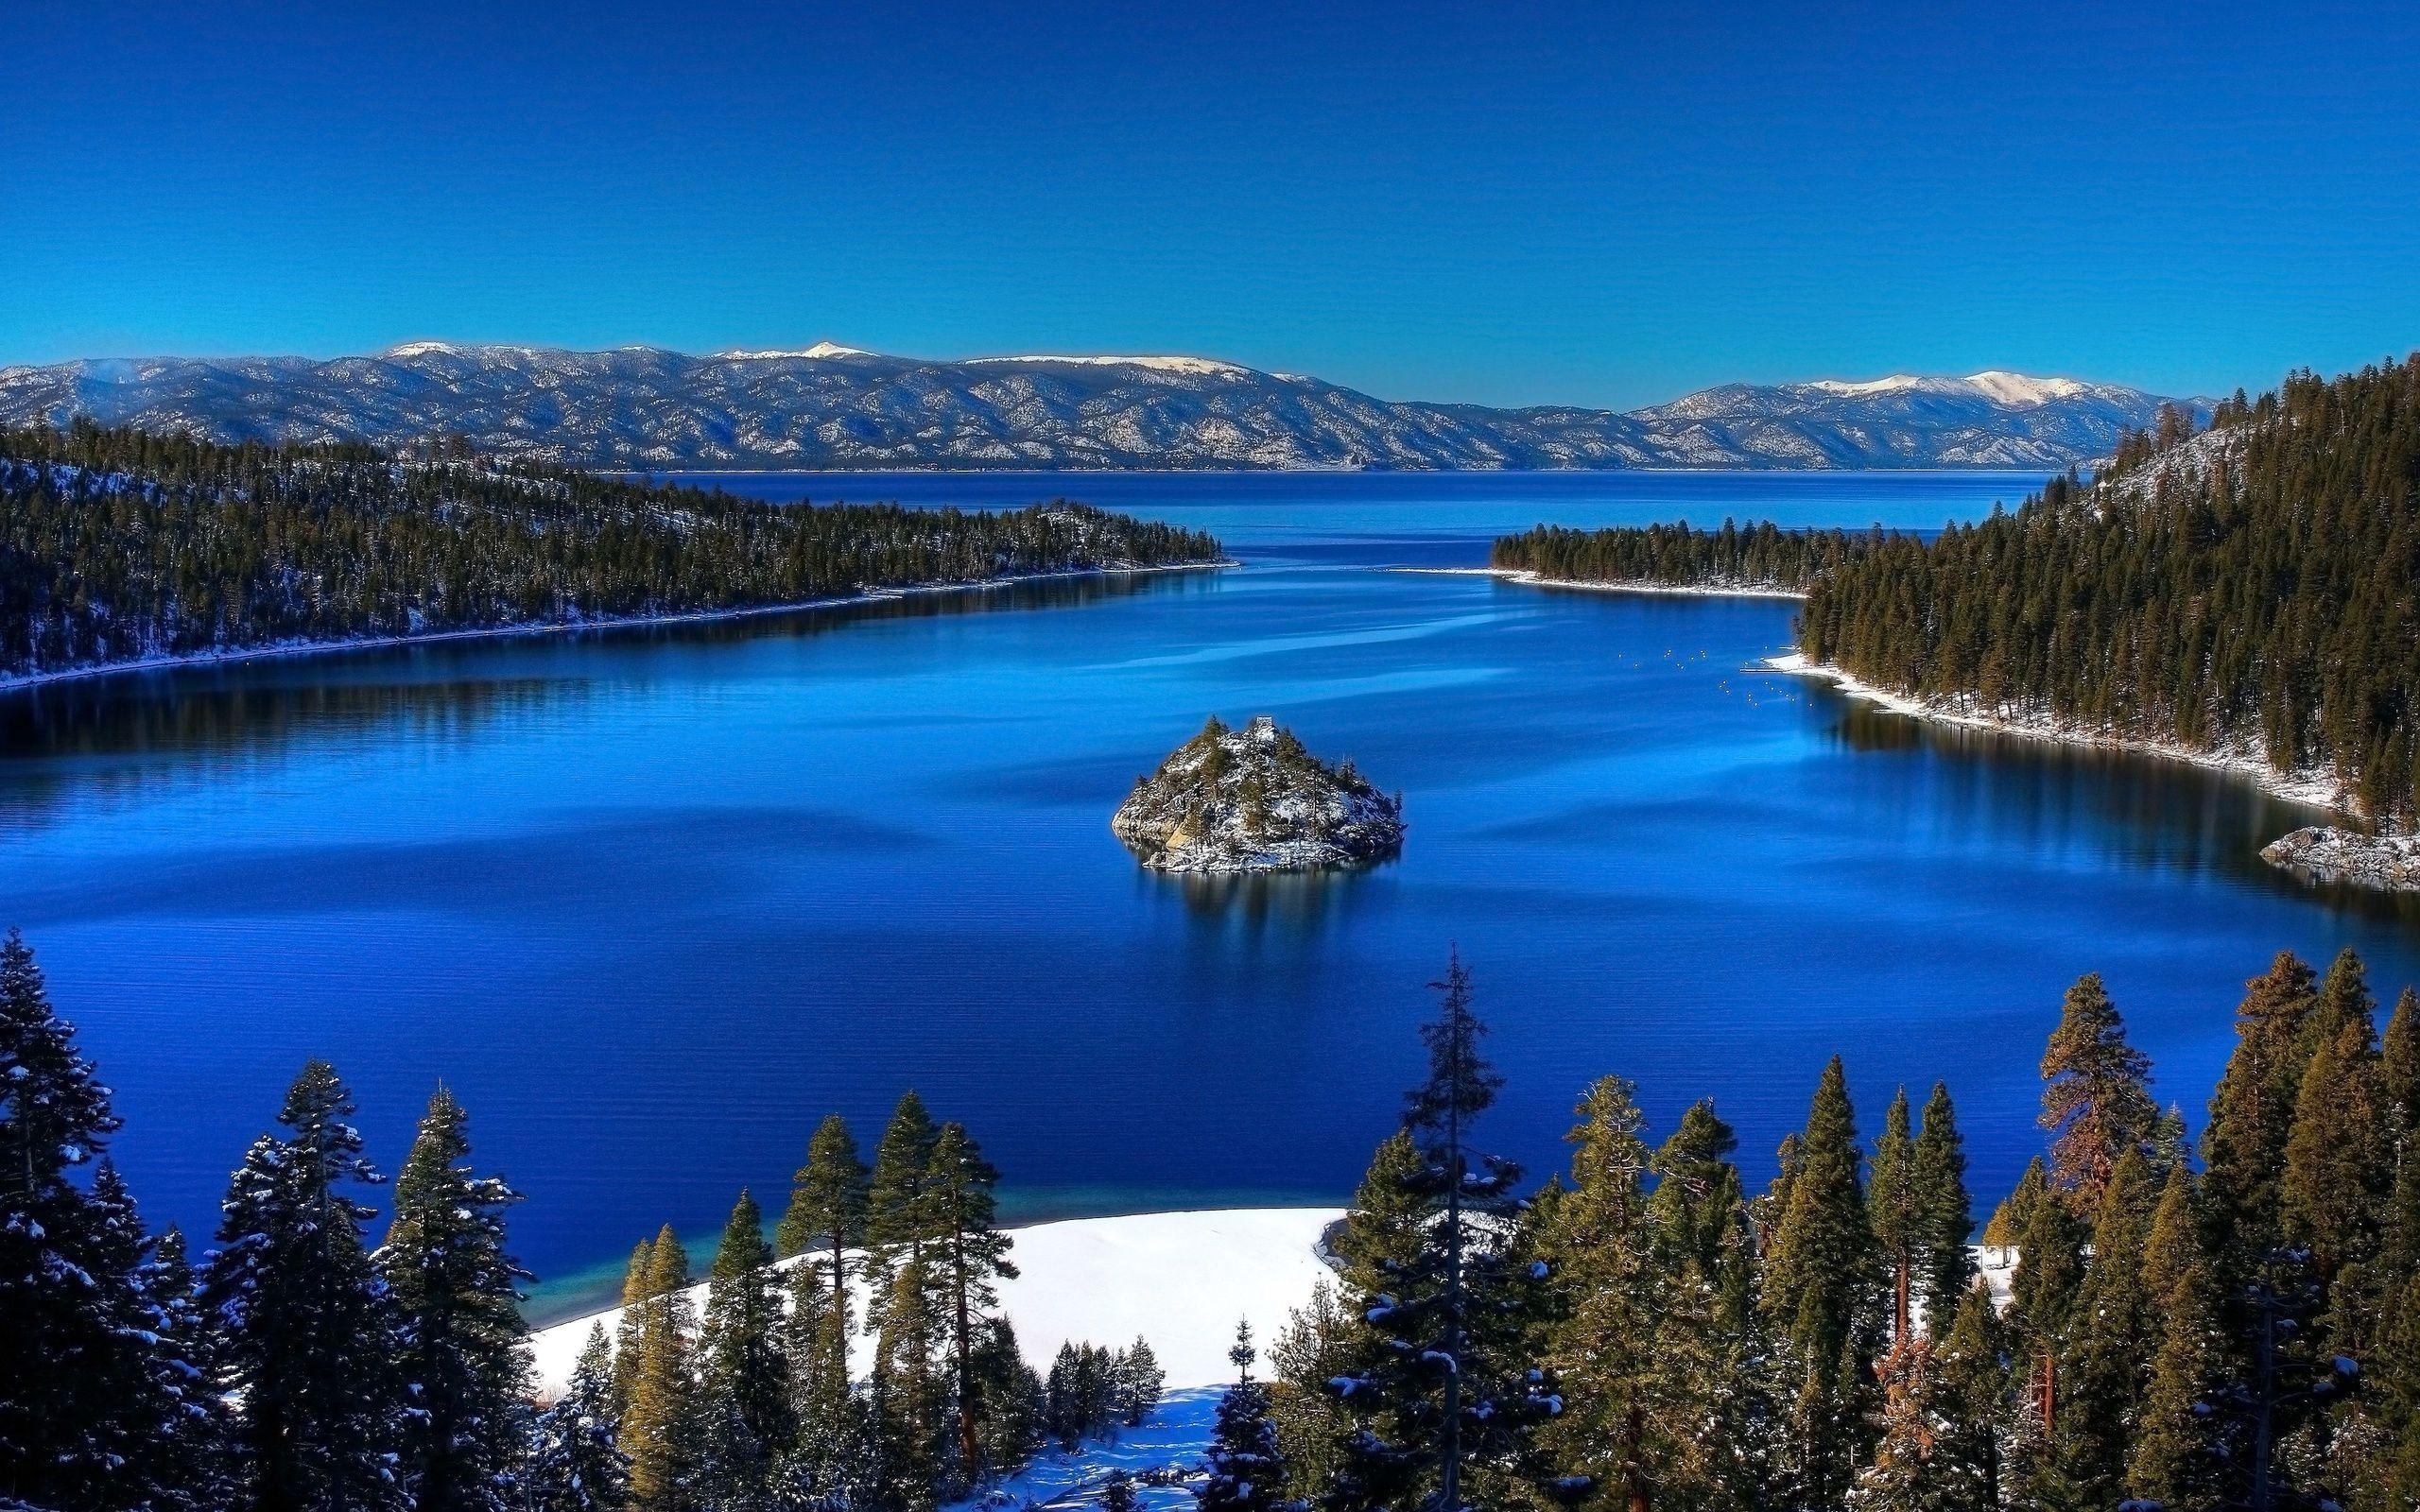 3d Moving Wallpaper For Pc Desktop Free Download Hd Small Island In The Blue Lake Wallpaper Download Free